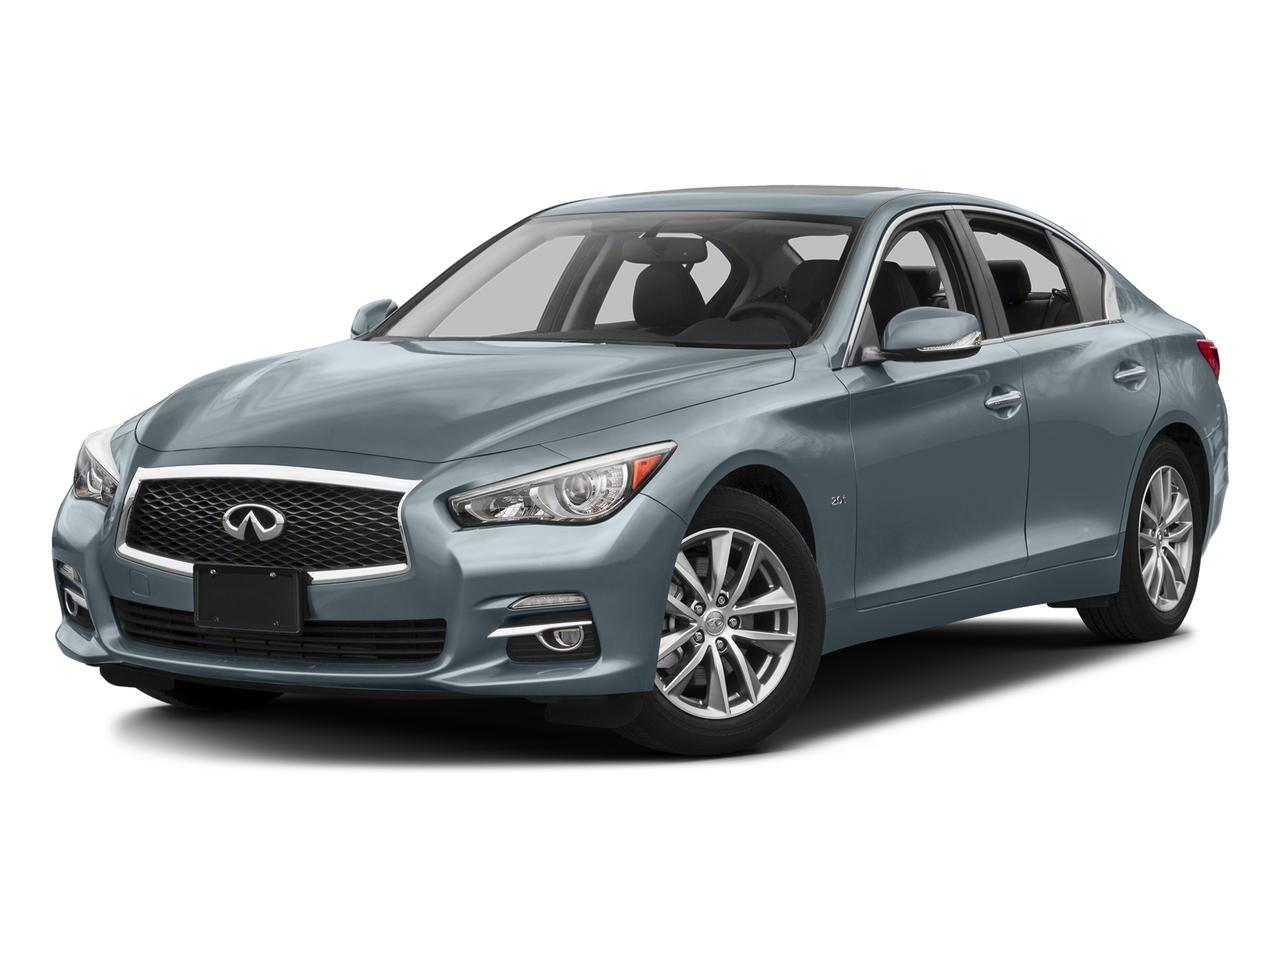 2017 INFINITI Q50 Vehicle Photo in HOOVER, AL 35216